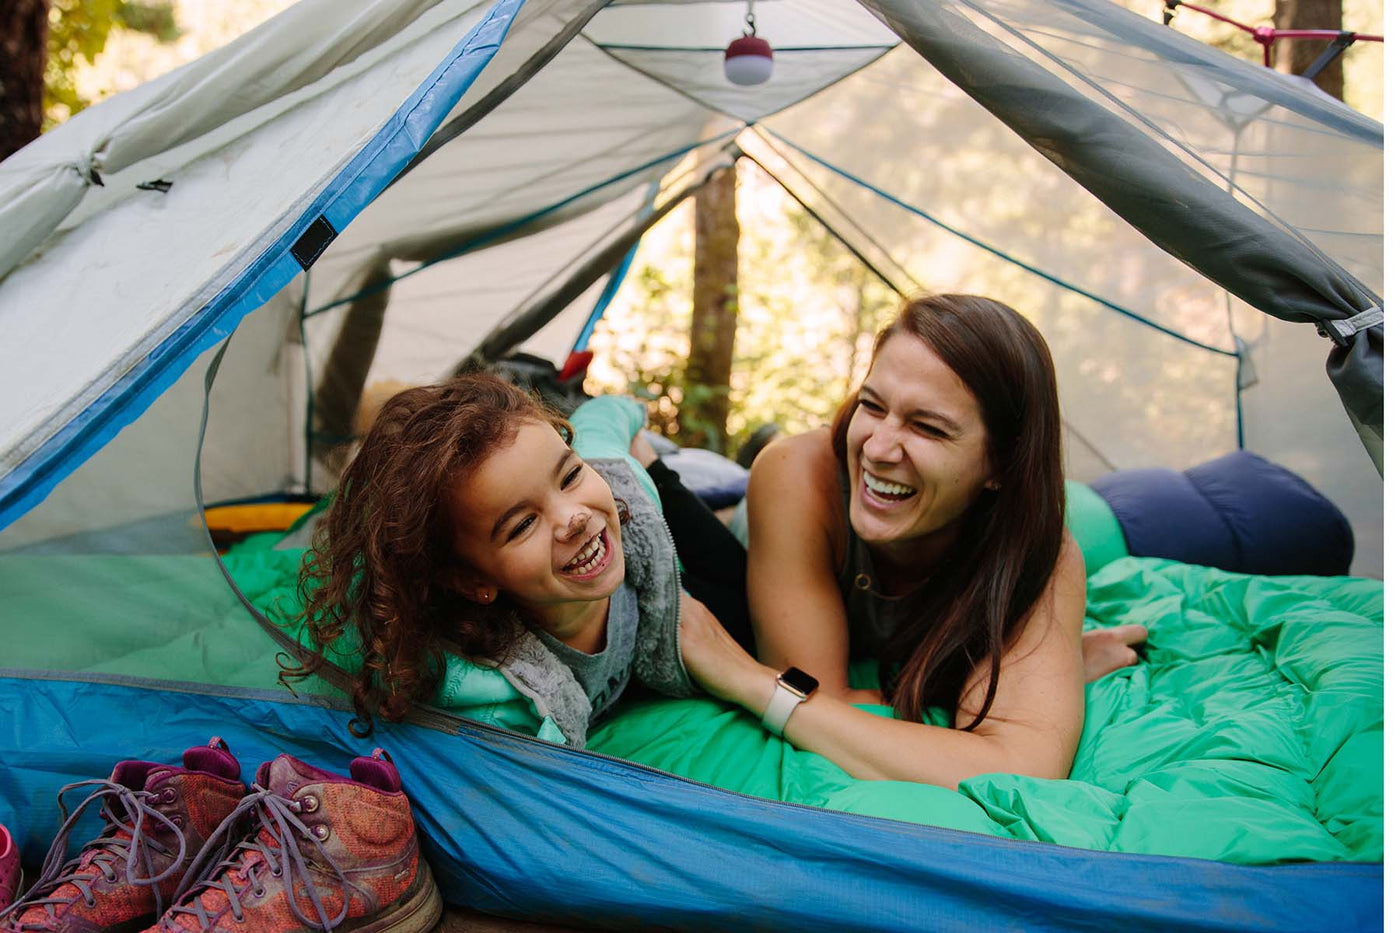 How to Plan a Backyard Camping Night With Your Family